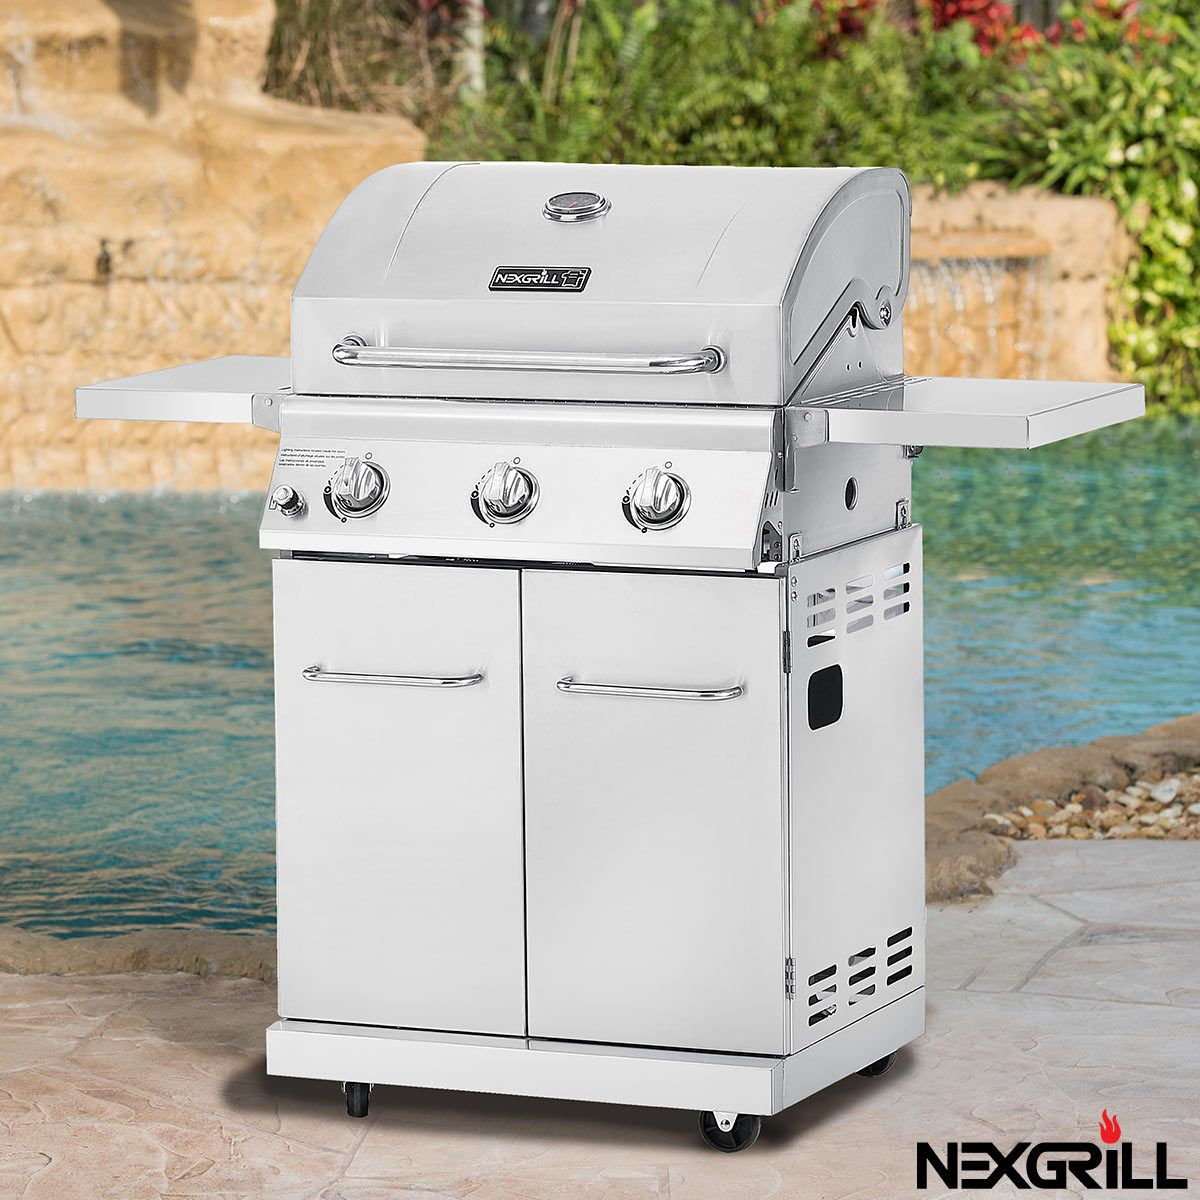 Nexgrill 3 Burner Stainless Steel Gas Barbecue Cover Costco Uk Gas Bbq Grilling Bbq Grill